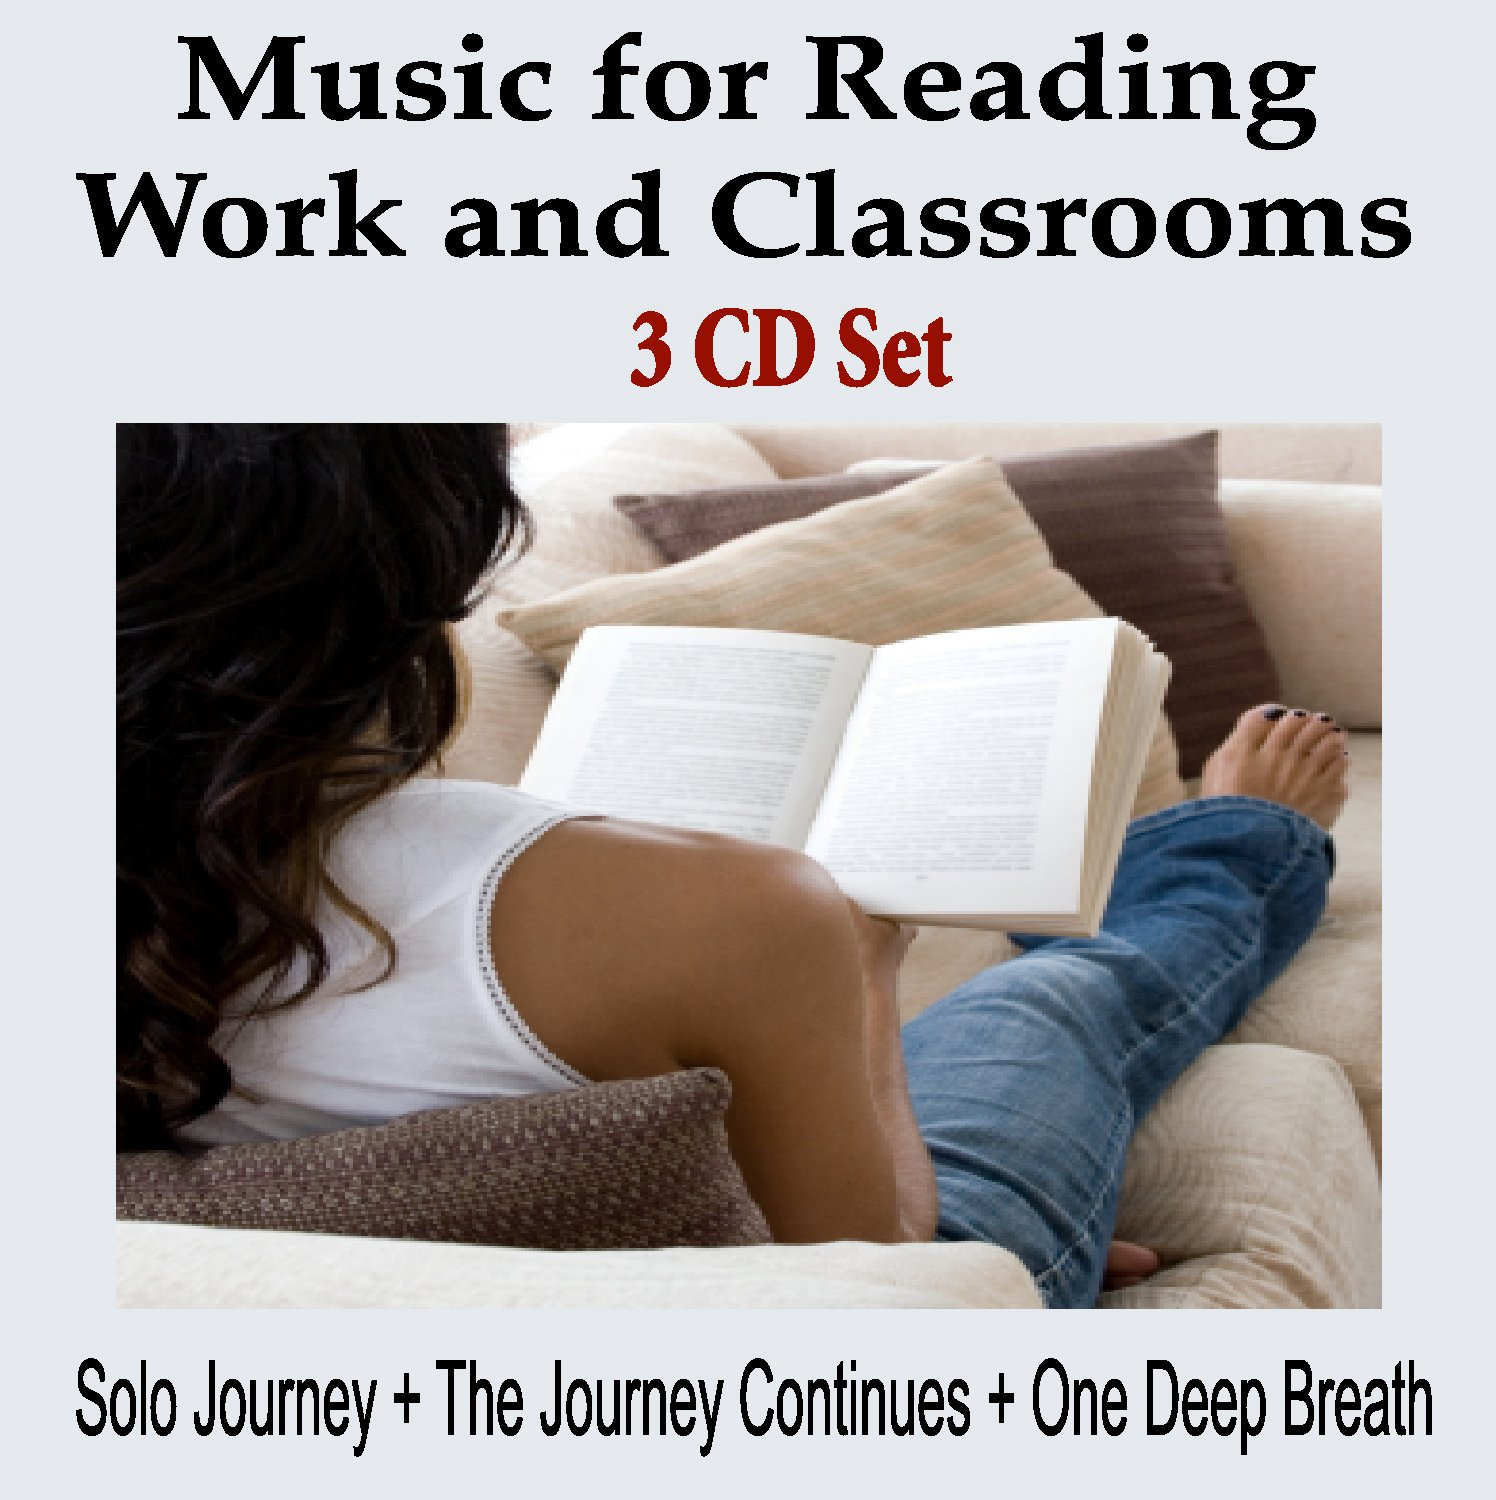 Music To Read By - 3 CD SET: Study Music, Music For Work or Music for the Classroom